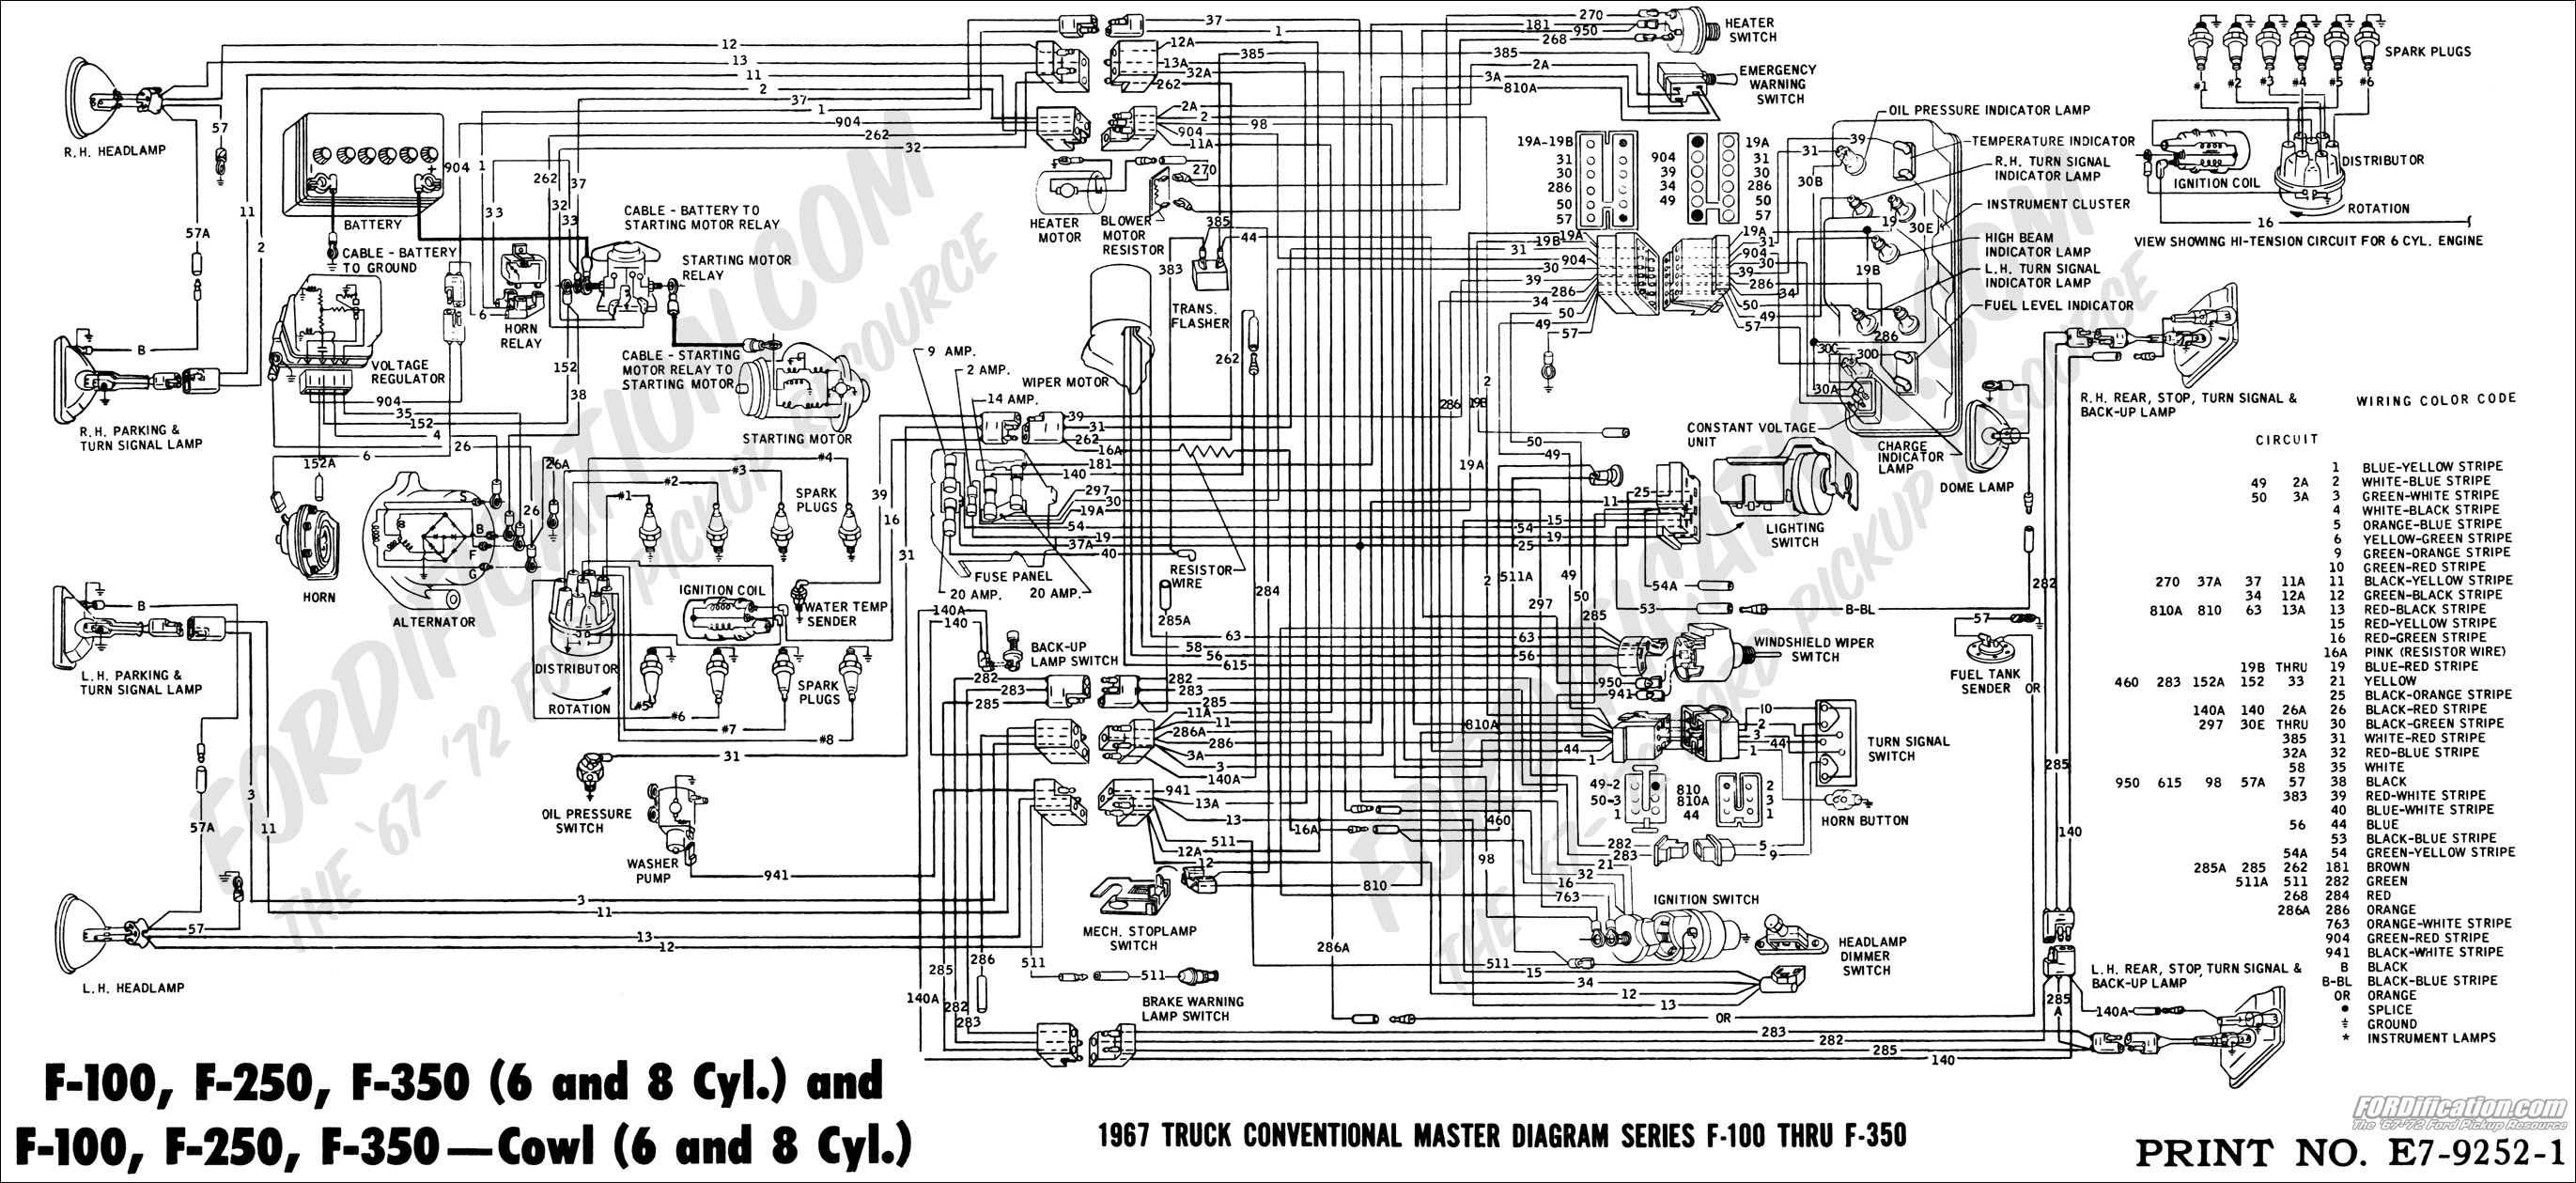 1973 ford f 250 wiring diagram detailed schematics diagram rh keyplusrubber  com 1972 Ford F-250 Ranger 4x4 1972 Ford F-250 Ranger 4x4